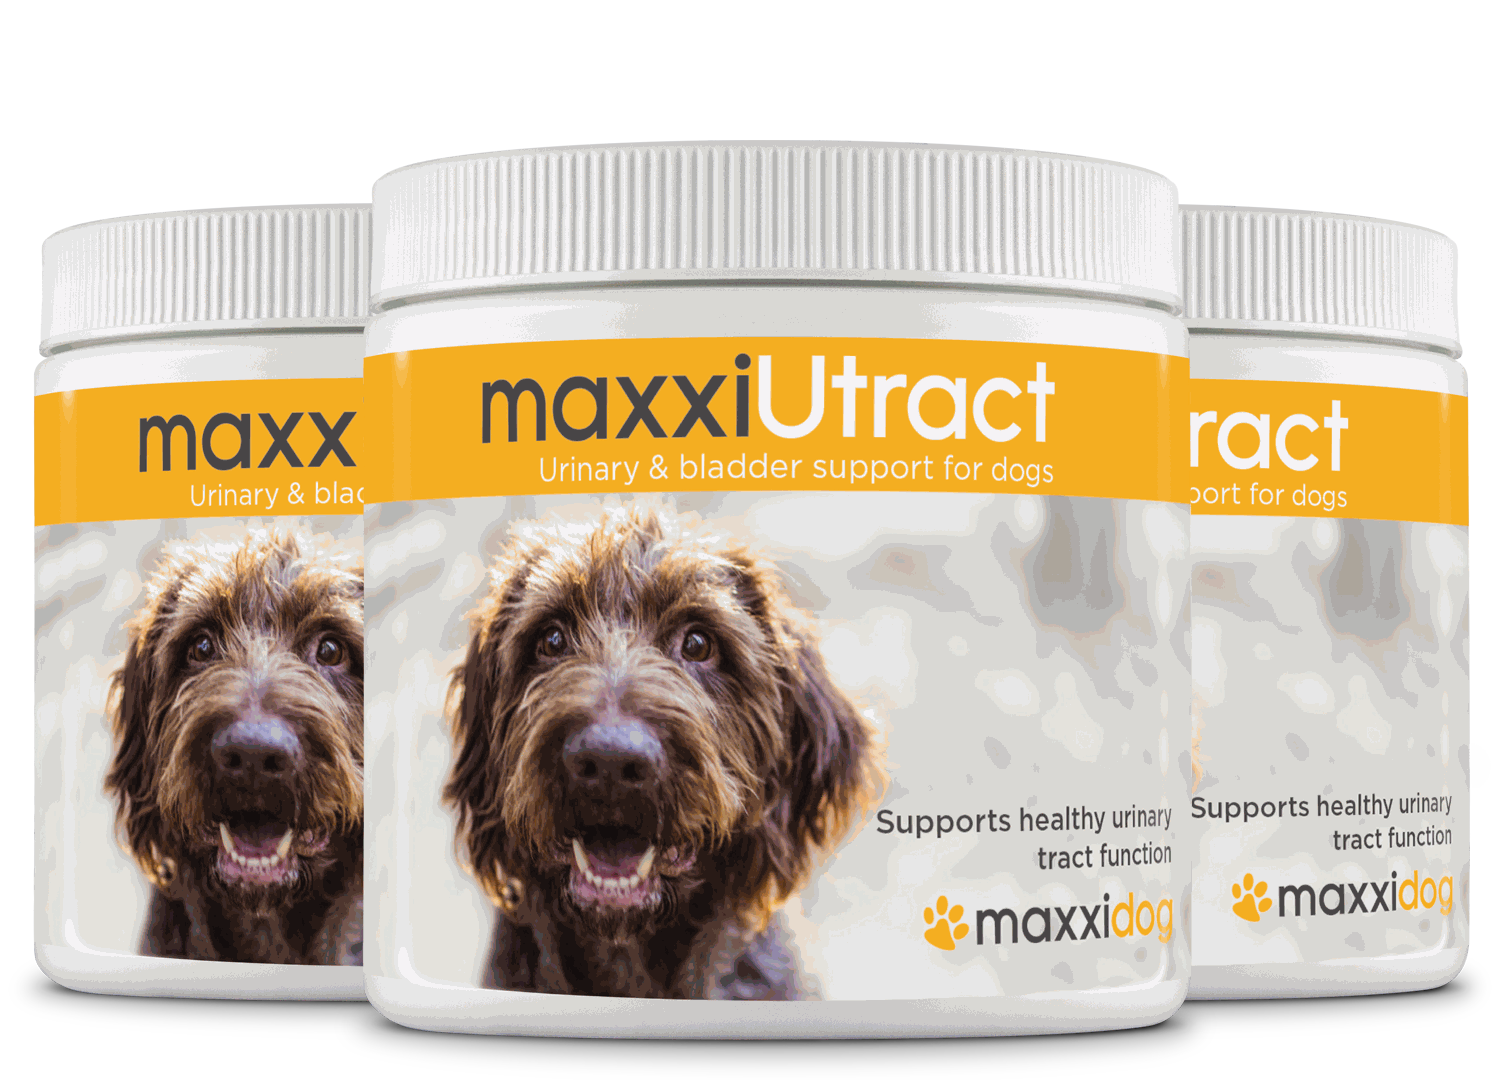 maxxiUtract for dogs-3 bottles